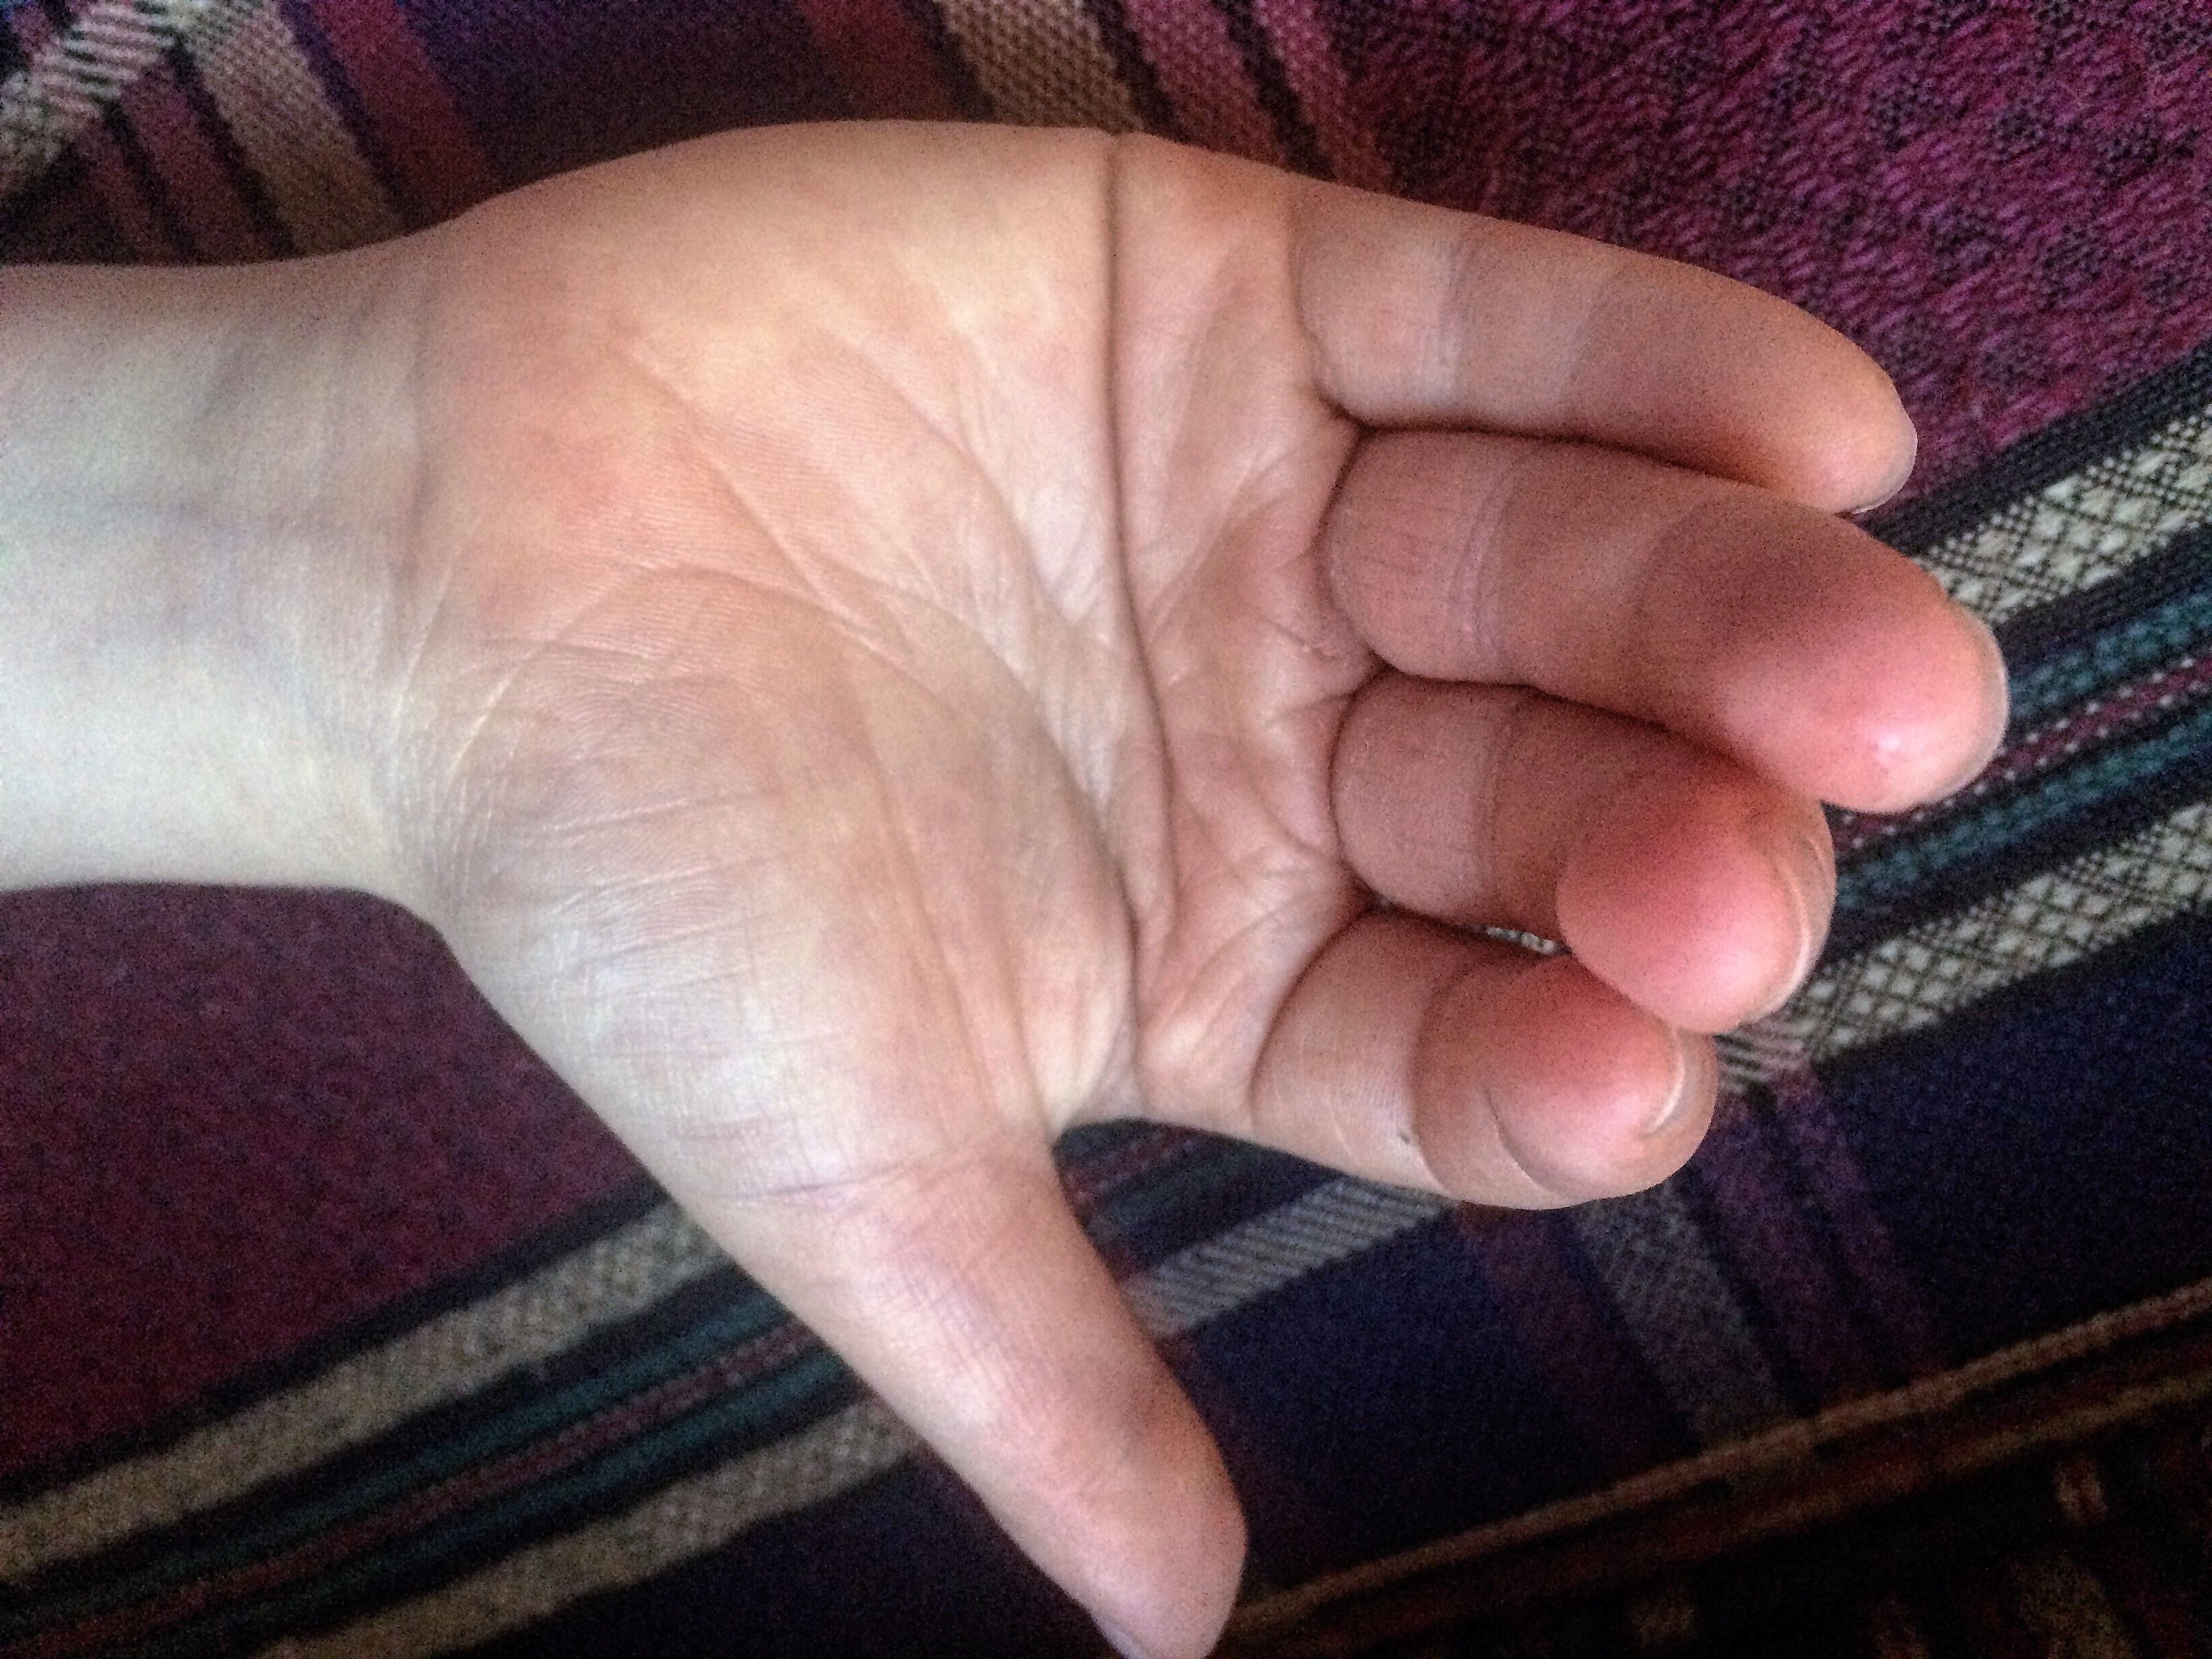 Simian line palmistry tony blair tony bliar - Autism This Is The Right Hand Of A Severely Autistic Young Girl